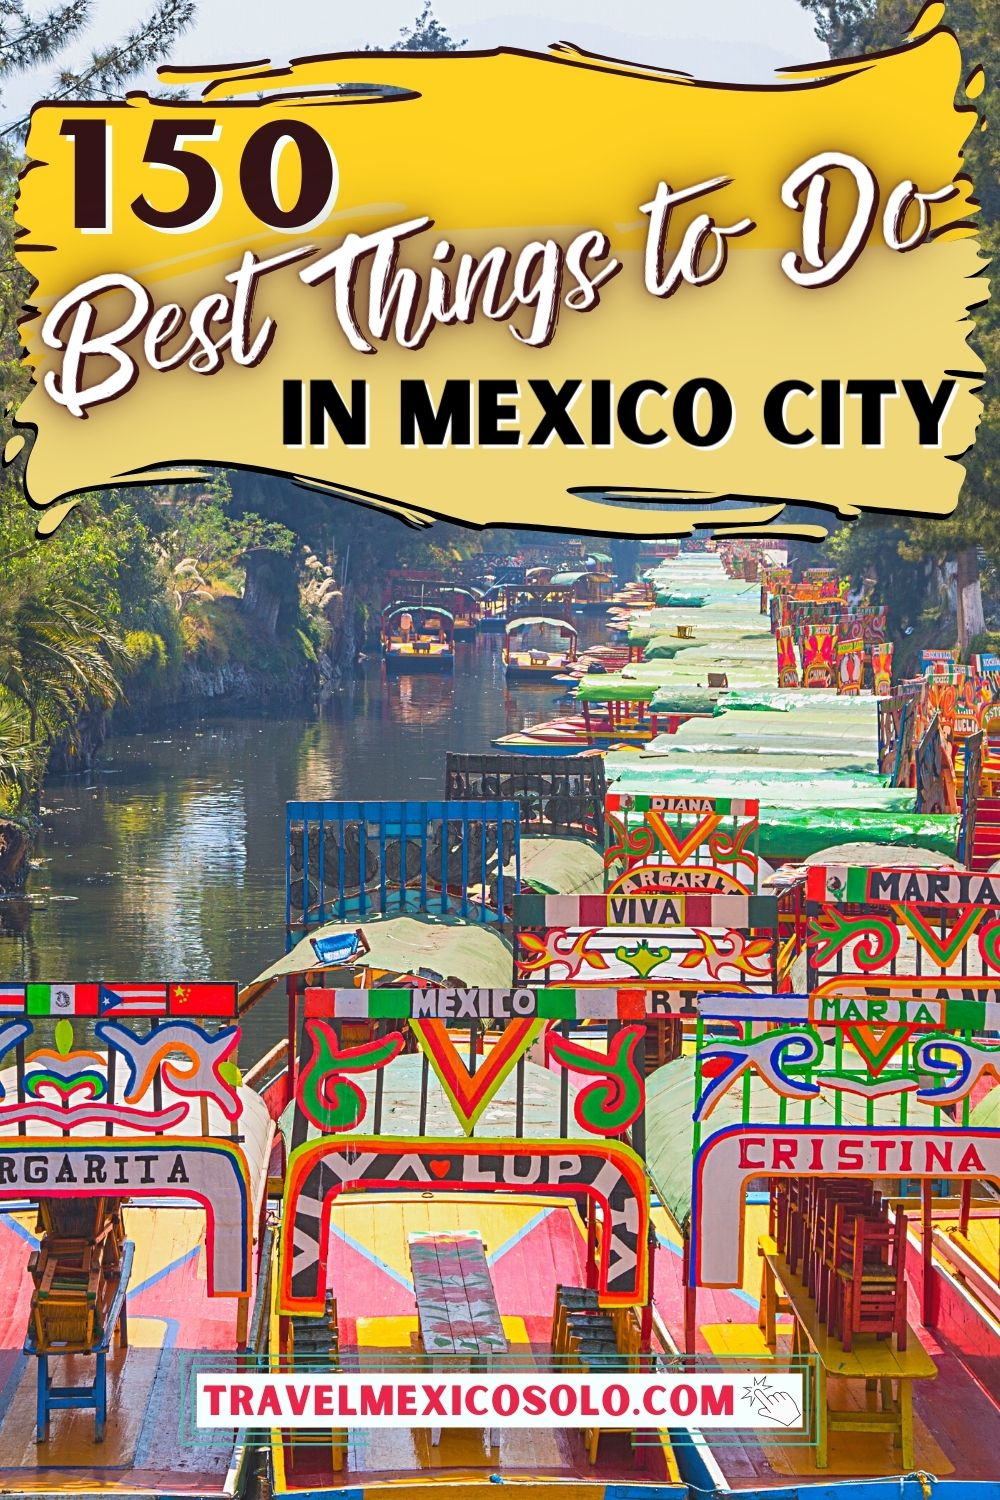 I used to live in Mexico City — which, is how I was able to compile this epic list of 150 things to do, see & eat in CDMX 🇲🇽 From the Xochimilco boats to authentic street food tacos al pastor, and everywhere from Roma Norte/Condesa to Centro Historico, this is the *only* guide you'll need for your Mexico City tyip.